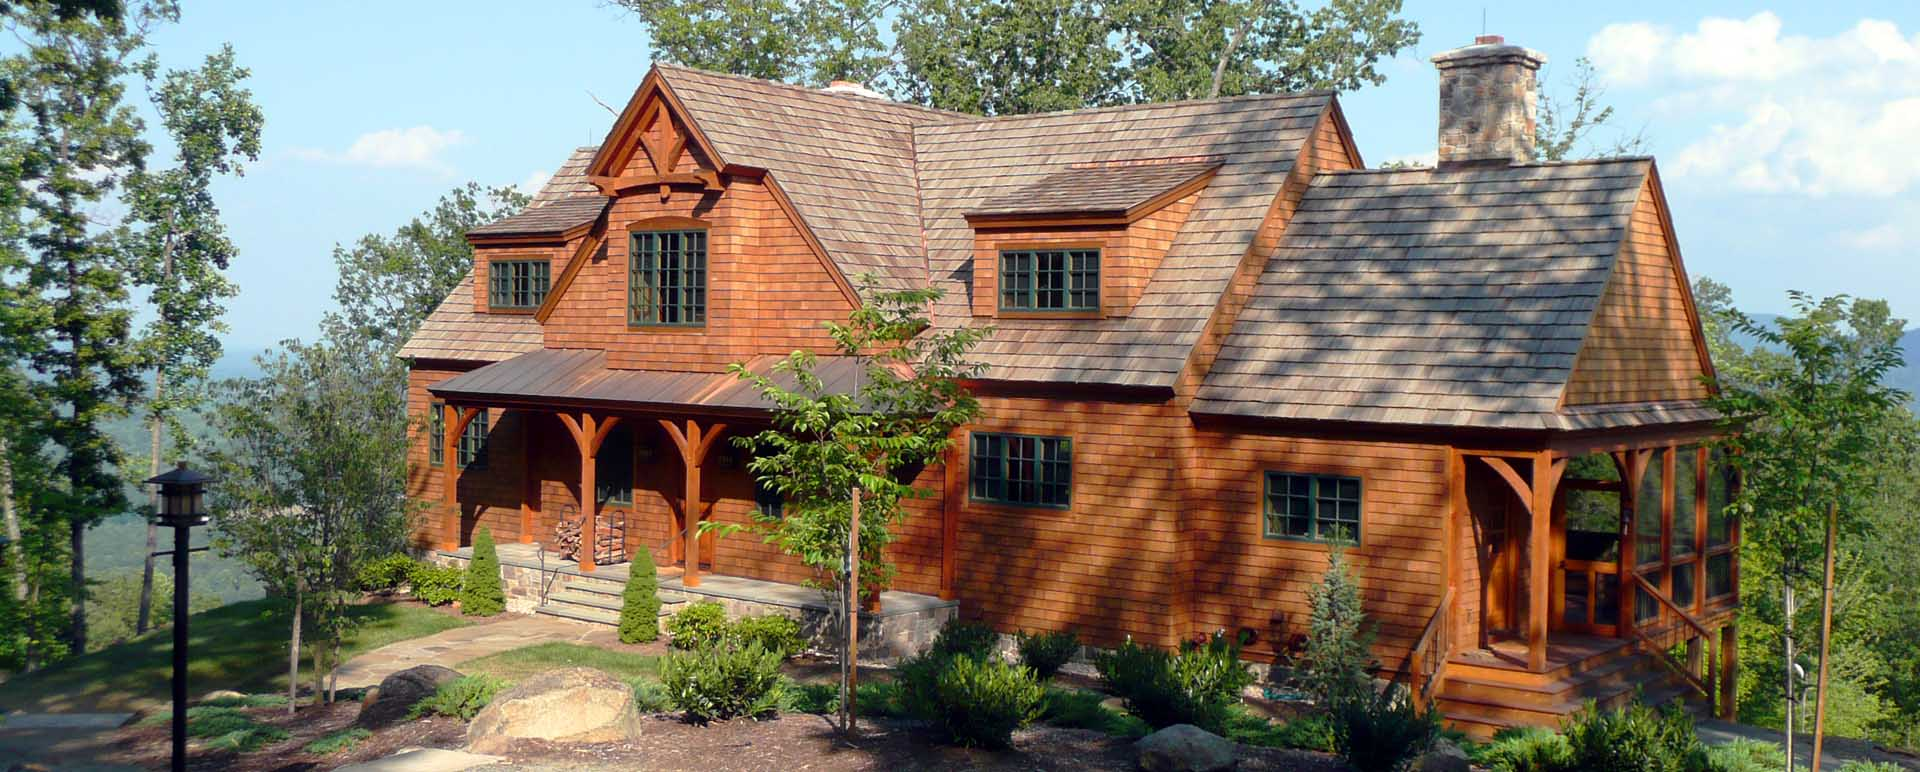 Timber Frame Homes   Post and Beam Plans  Timberpeg Post and Beam Mountain Home in Virginia